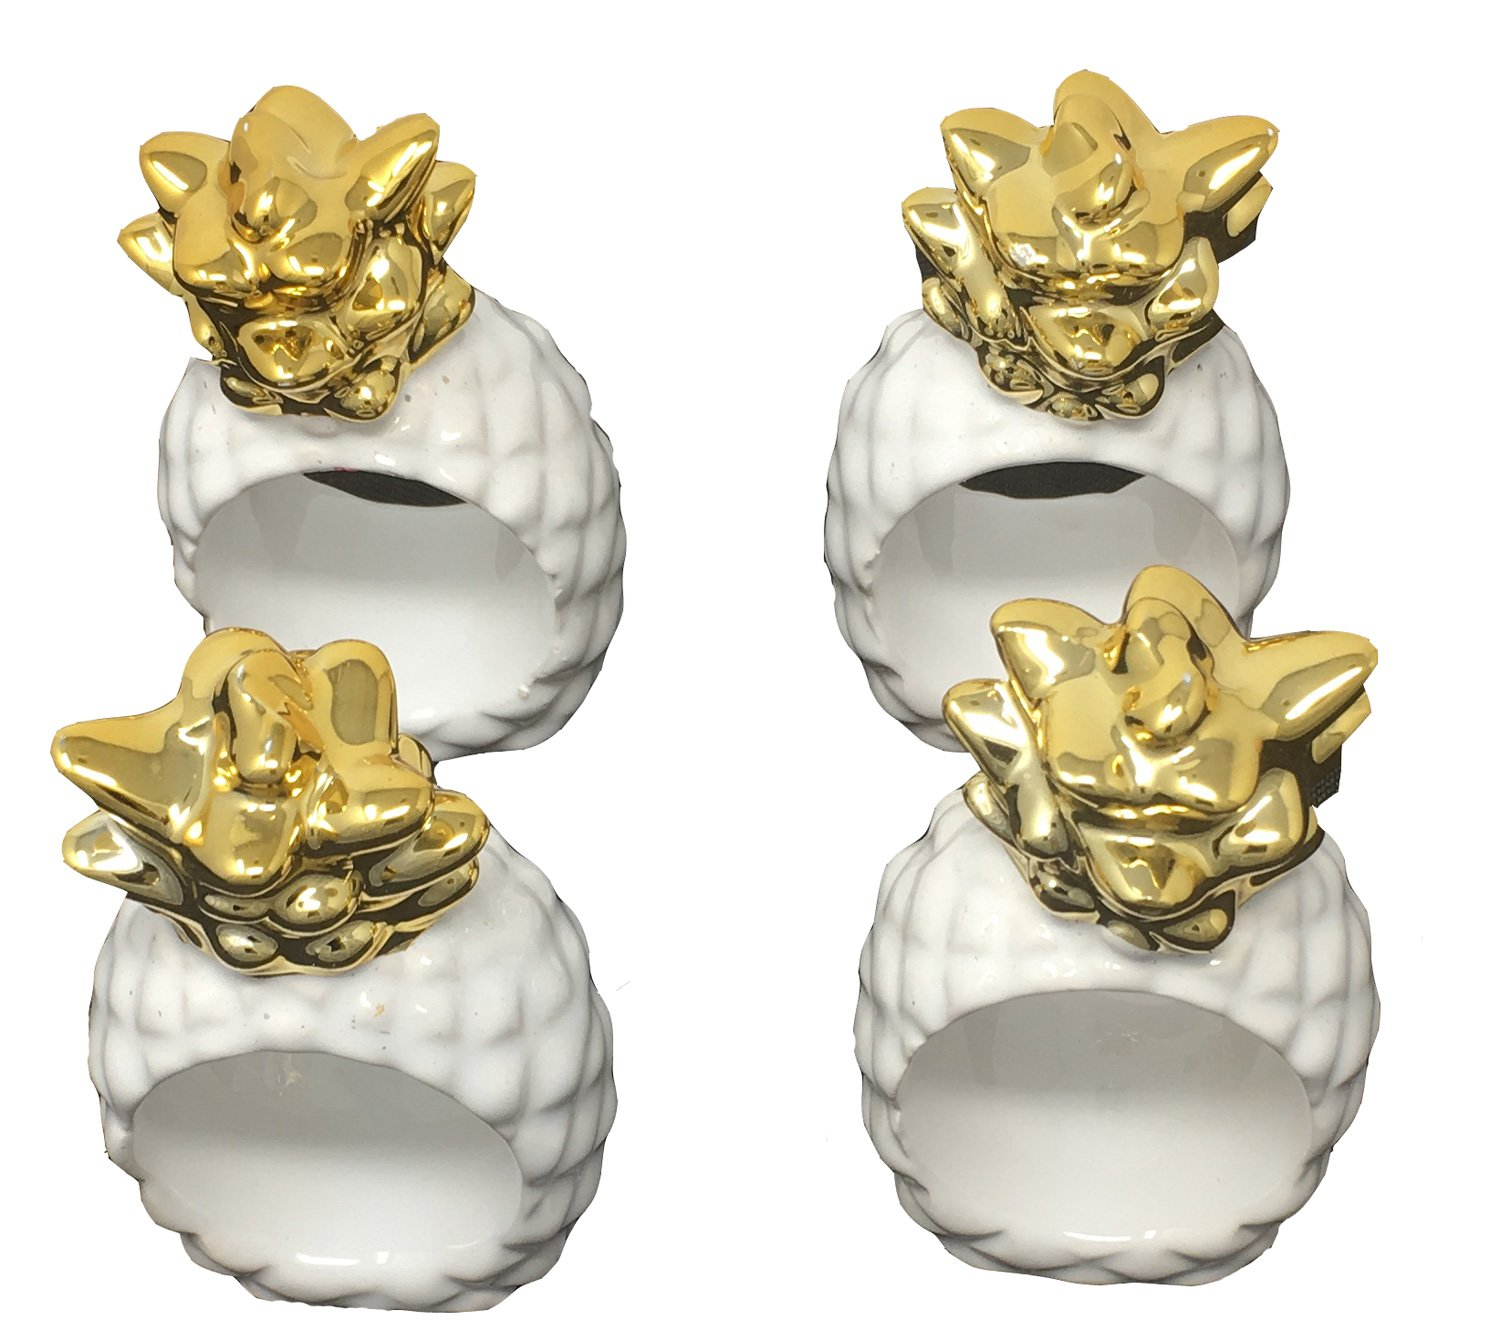 Design Imports Pineapple and Palms Table Linens, Ceramic Napkin Rings, Set of 4, Pineapple